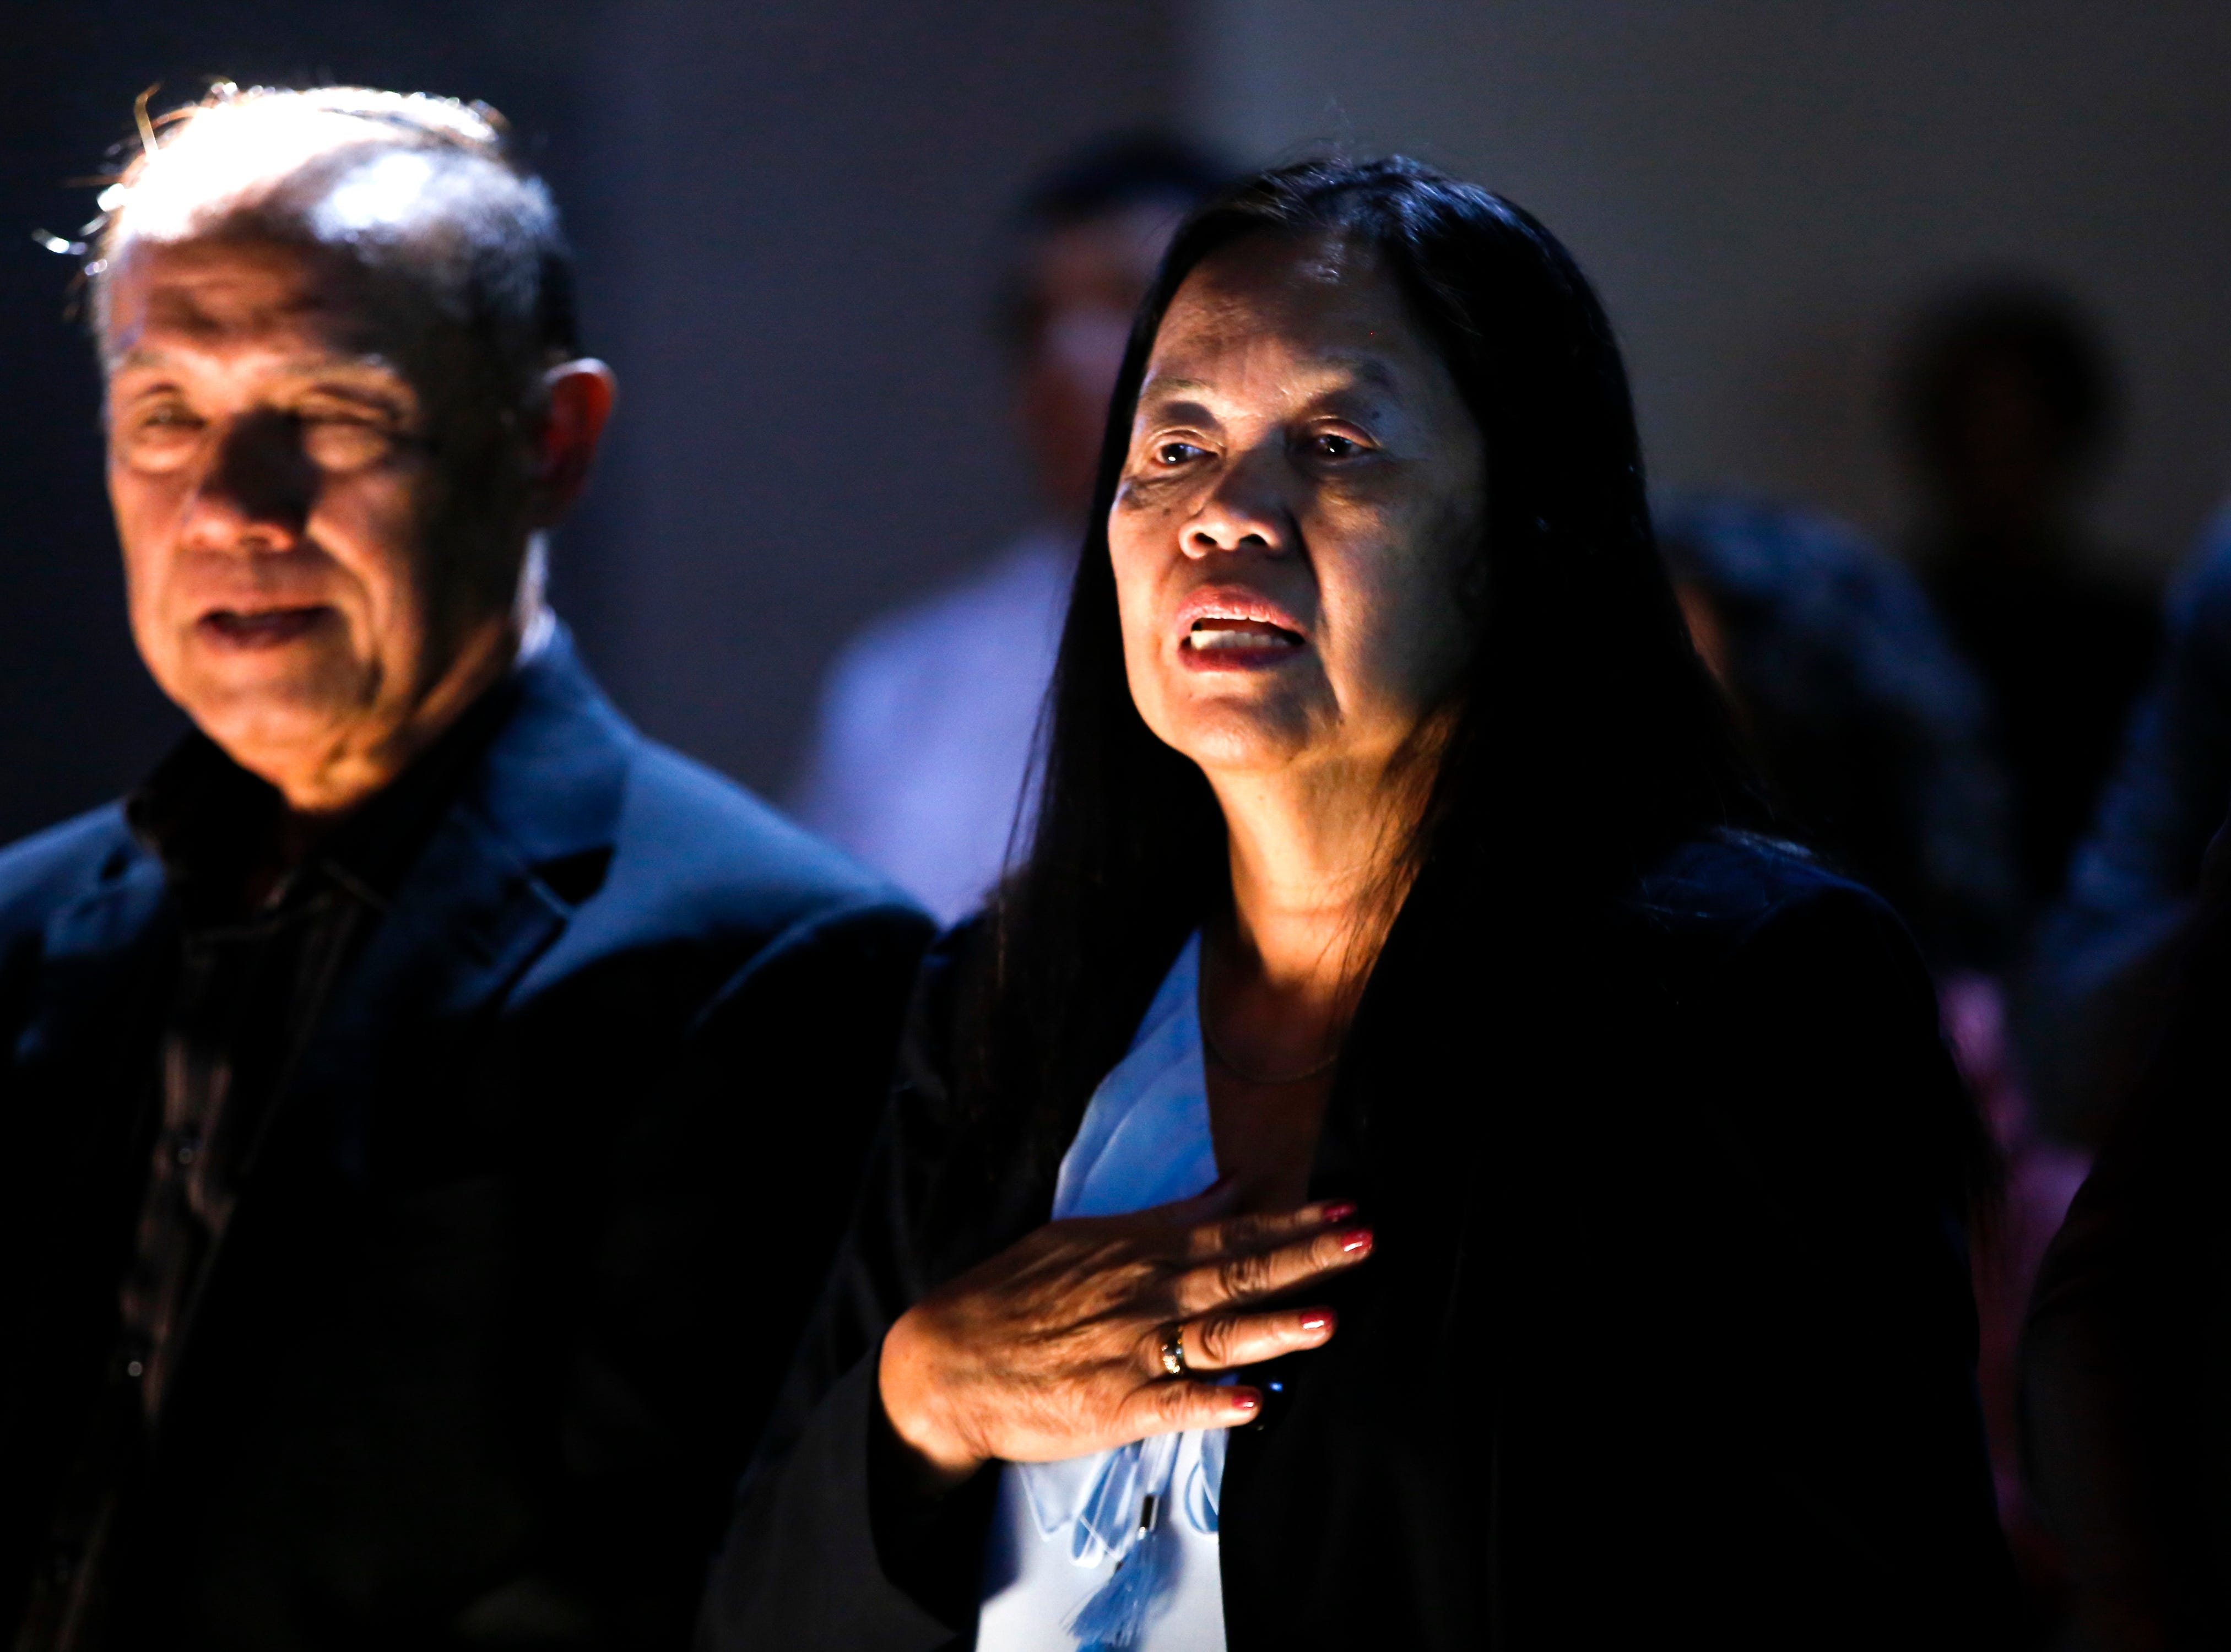 Rudolpho Mosqueda, left, and his wife Nenita Mosqueda sing the United States National Anthem, Friday, Sept. 28, 2018 before taking part in a naturalization ceremony at the Aztec Ruins National Monument.